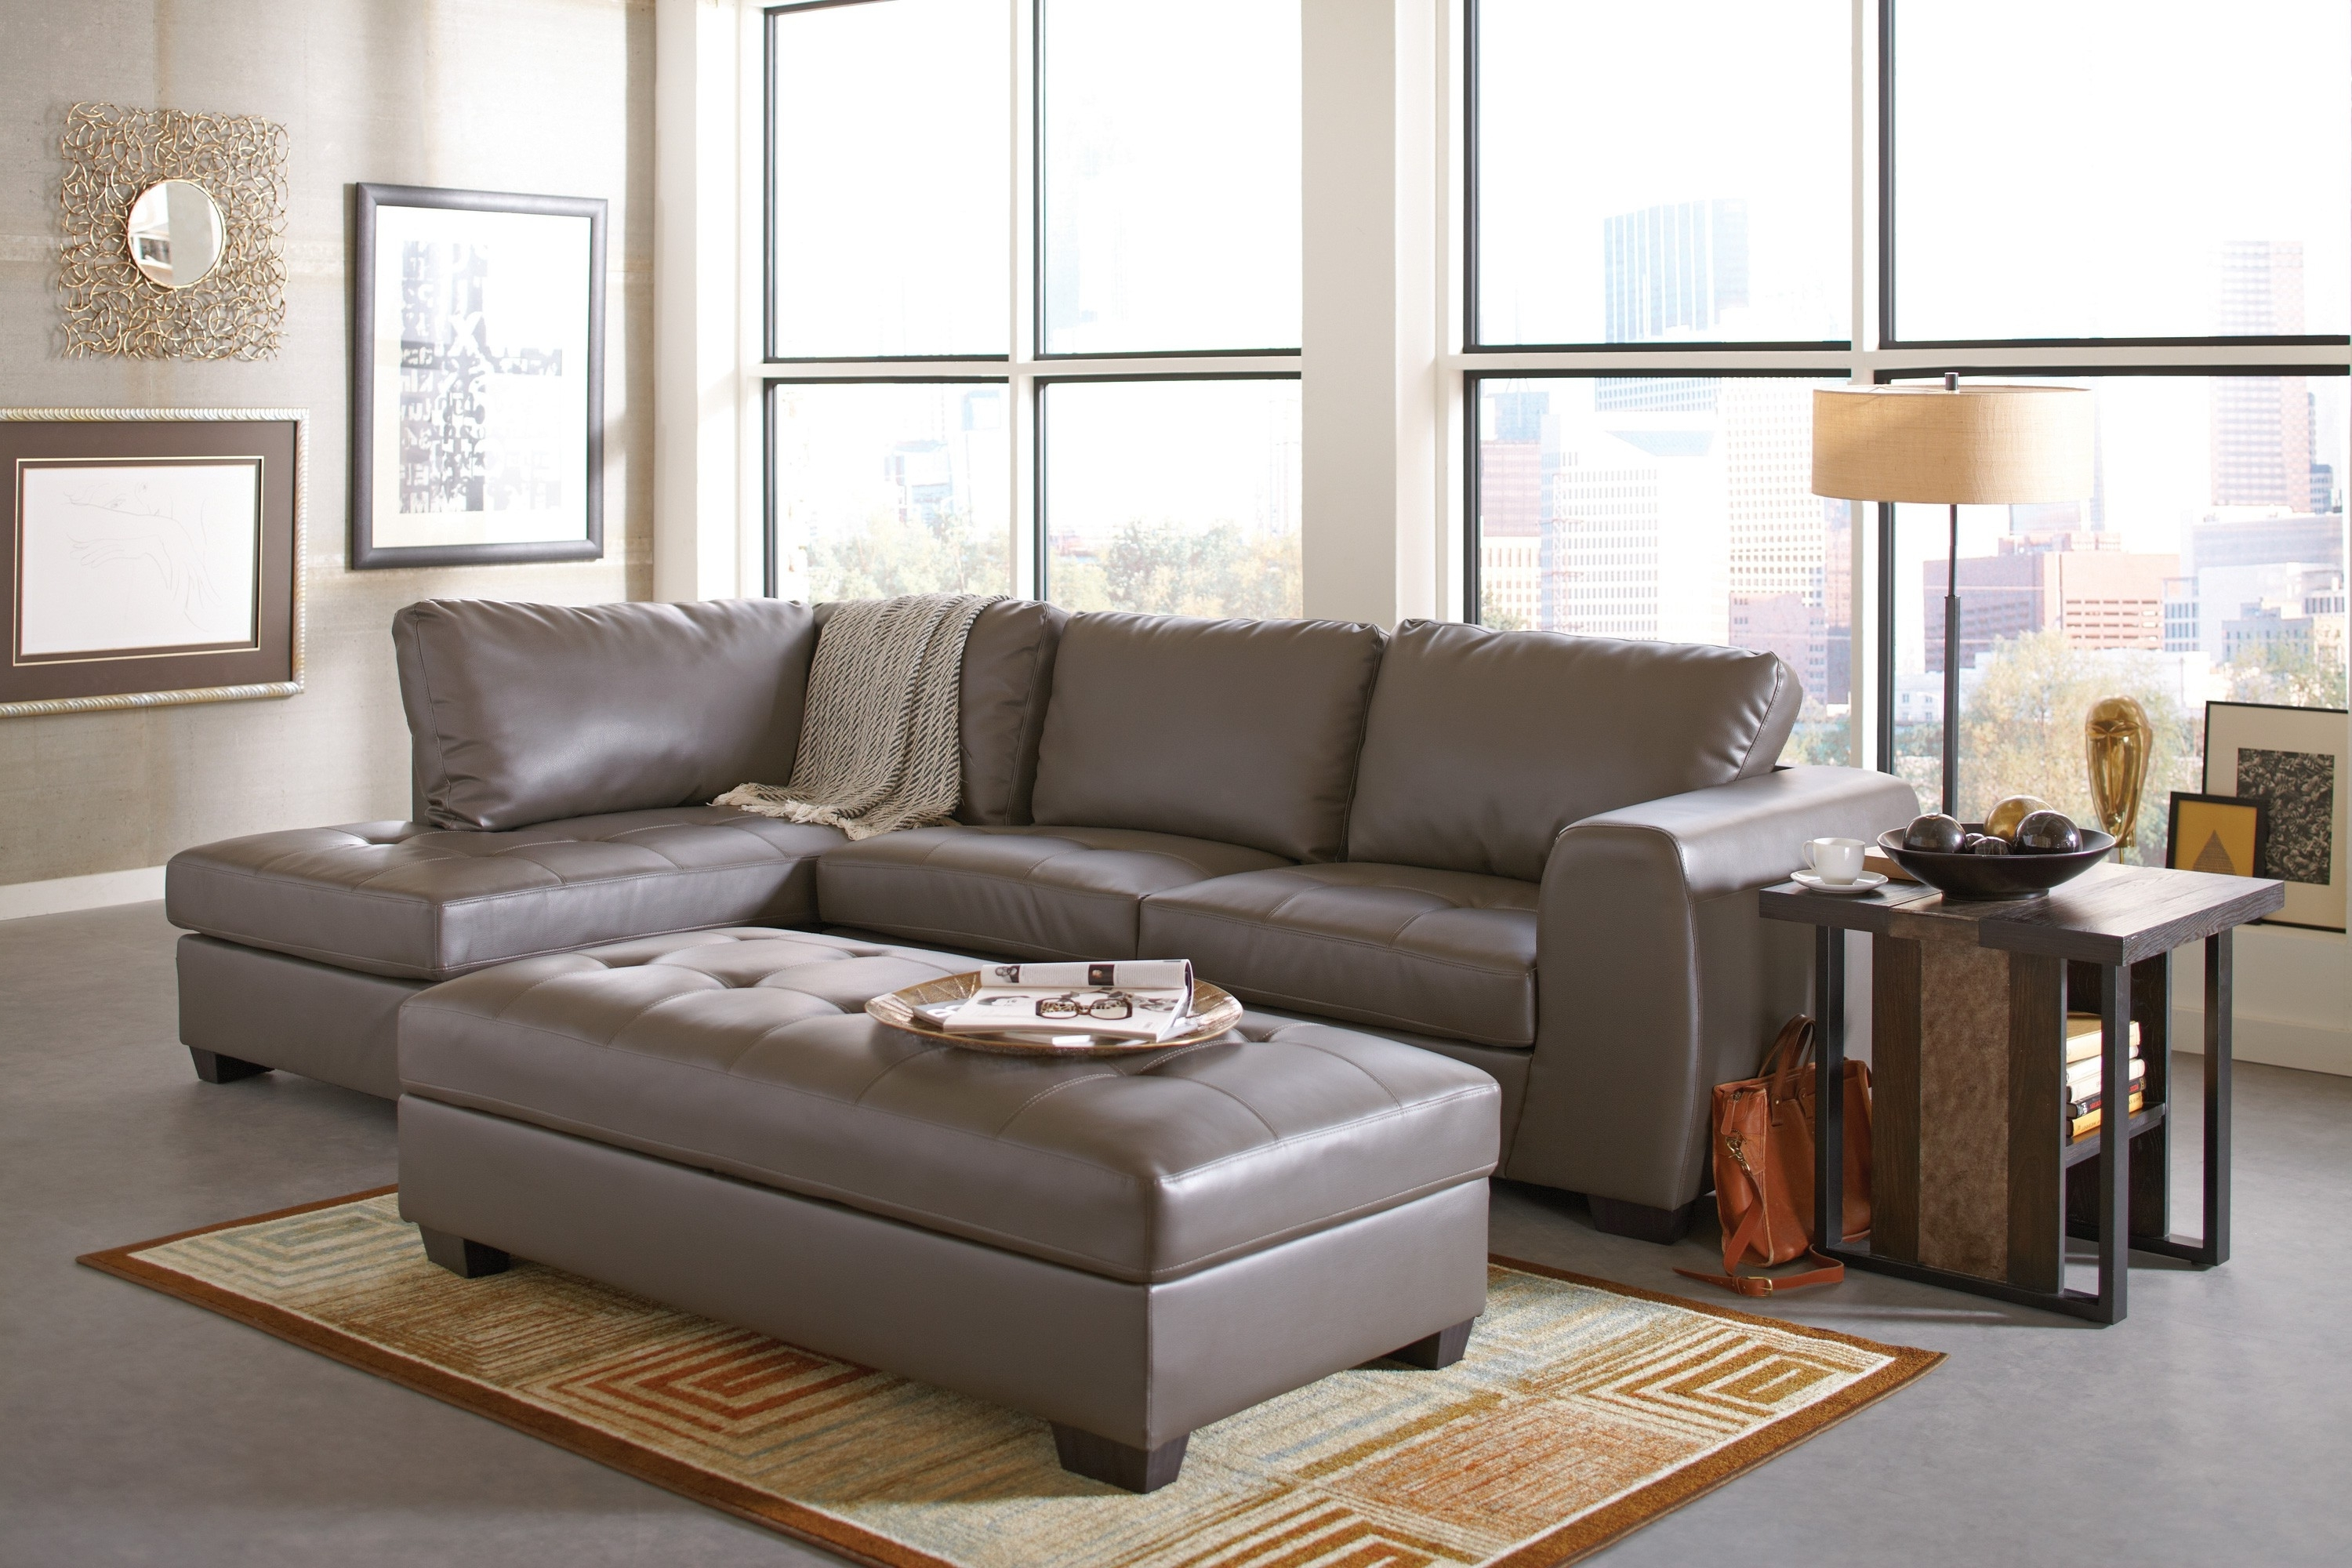 Sectional Sofas Under 200 With Regard To Recent Elegant Sectional Sofa Under 200 – Buildsimplehome (View 14 of 15)